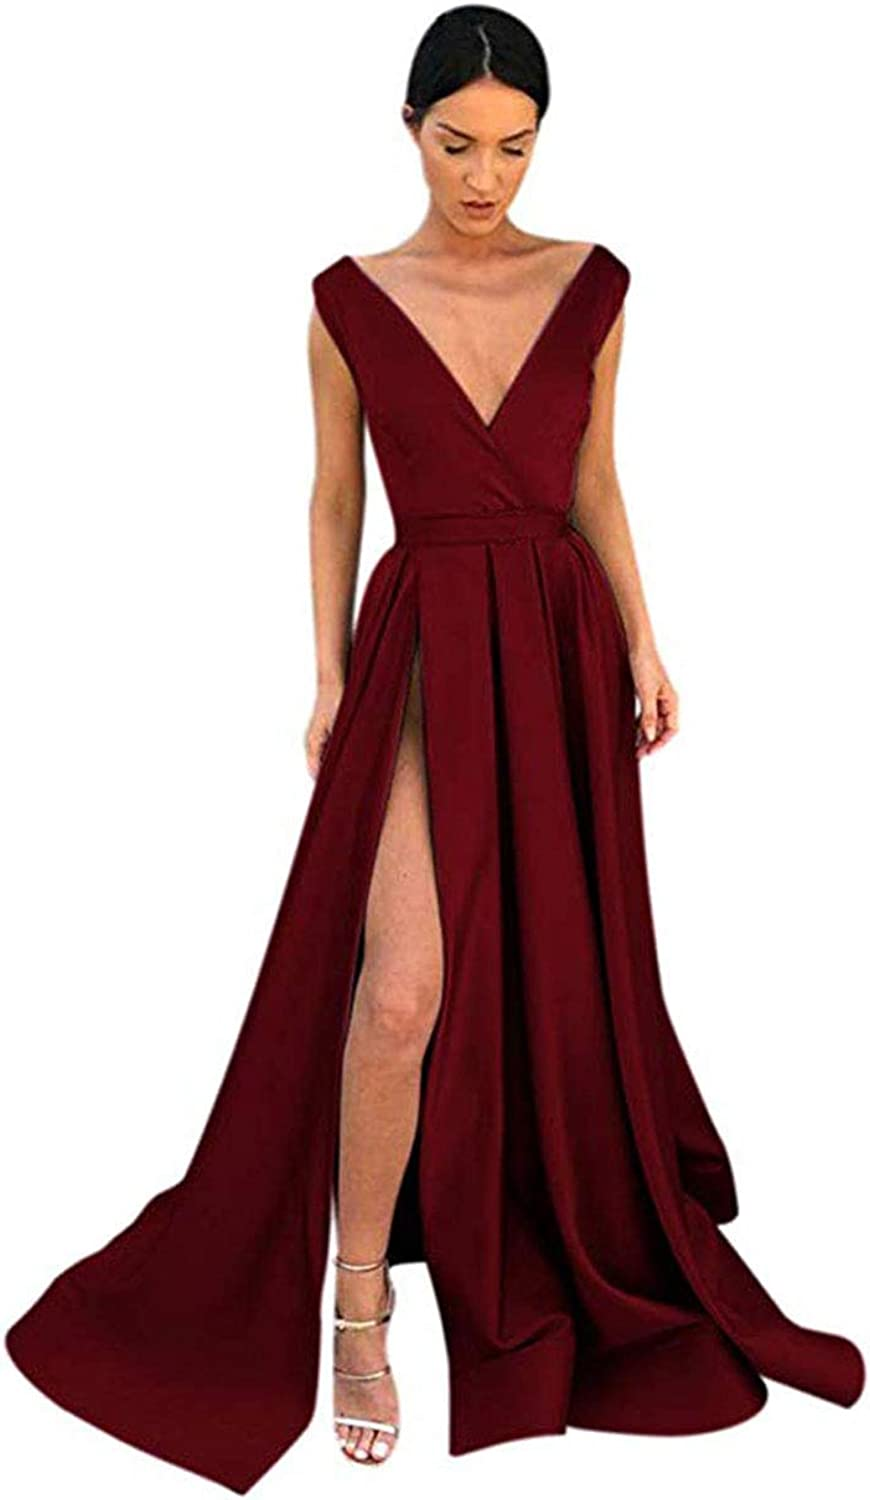 Fashionbride Women's Sexy Long Evening Dress V Neck Satin Front Slit Prom Dresses with Pockets